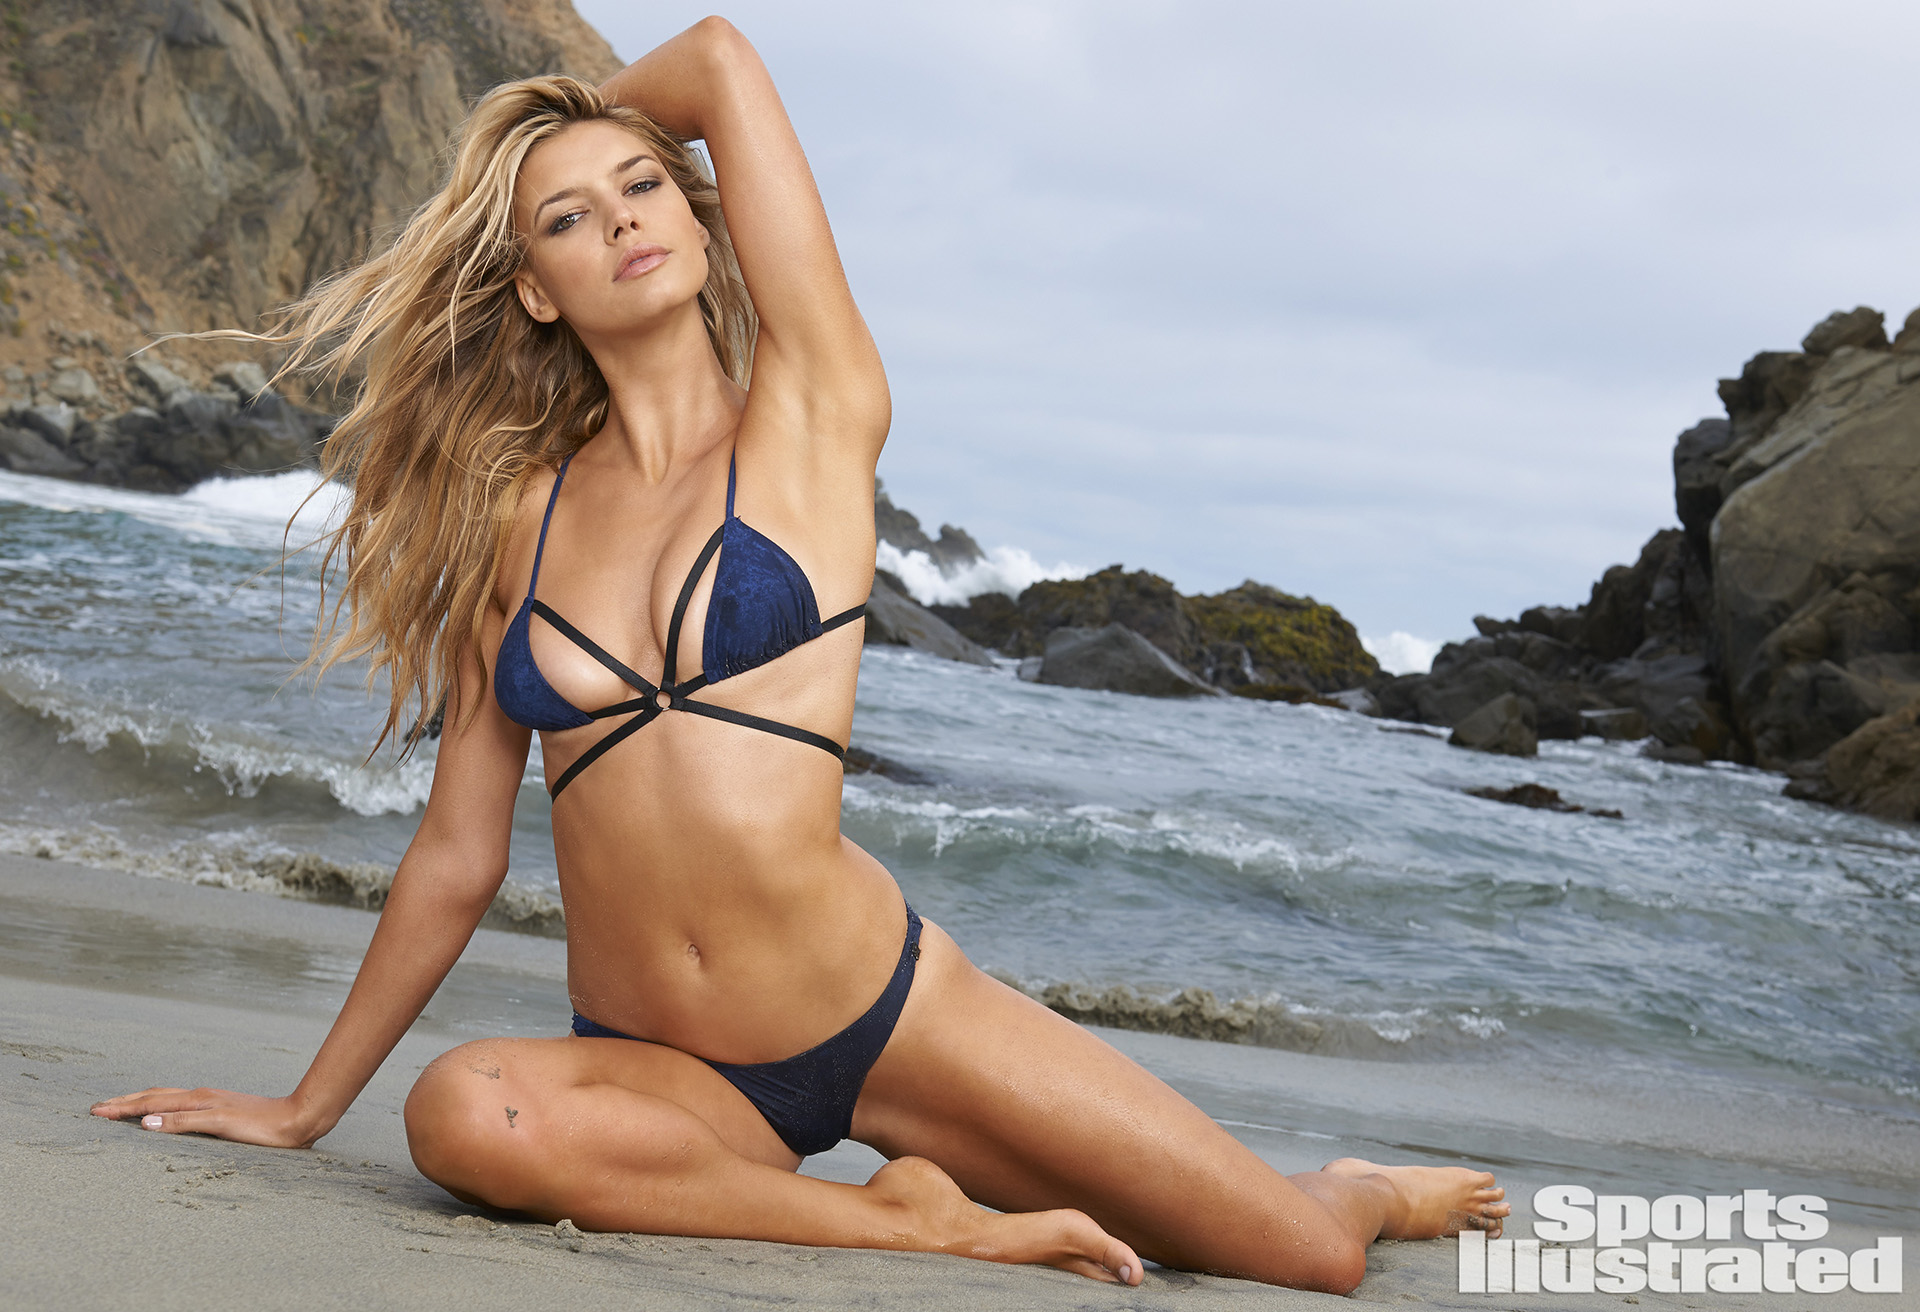 Bikini Kelly Rohrbach nudes (74 photos), Sexy, Sideboobs, Twitter, butt 2015